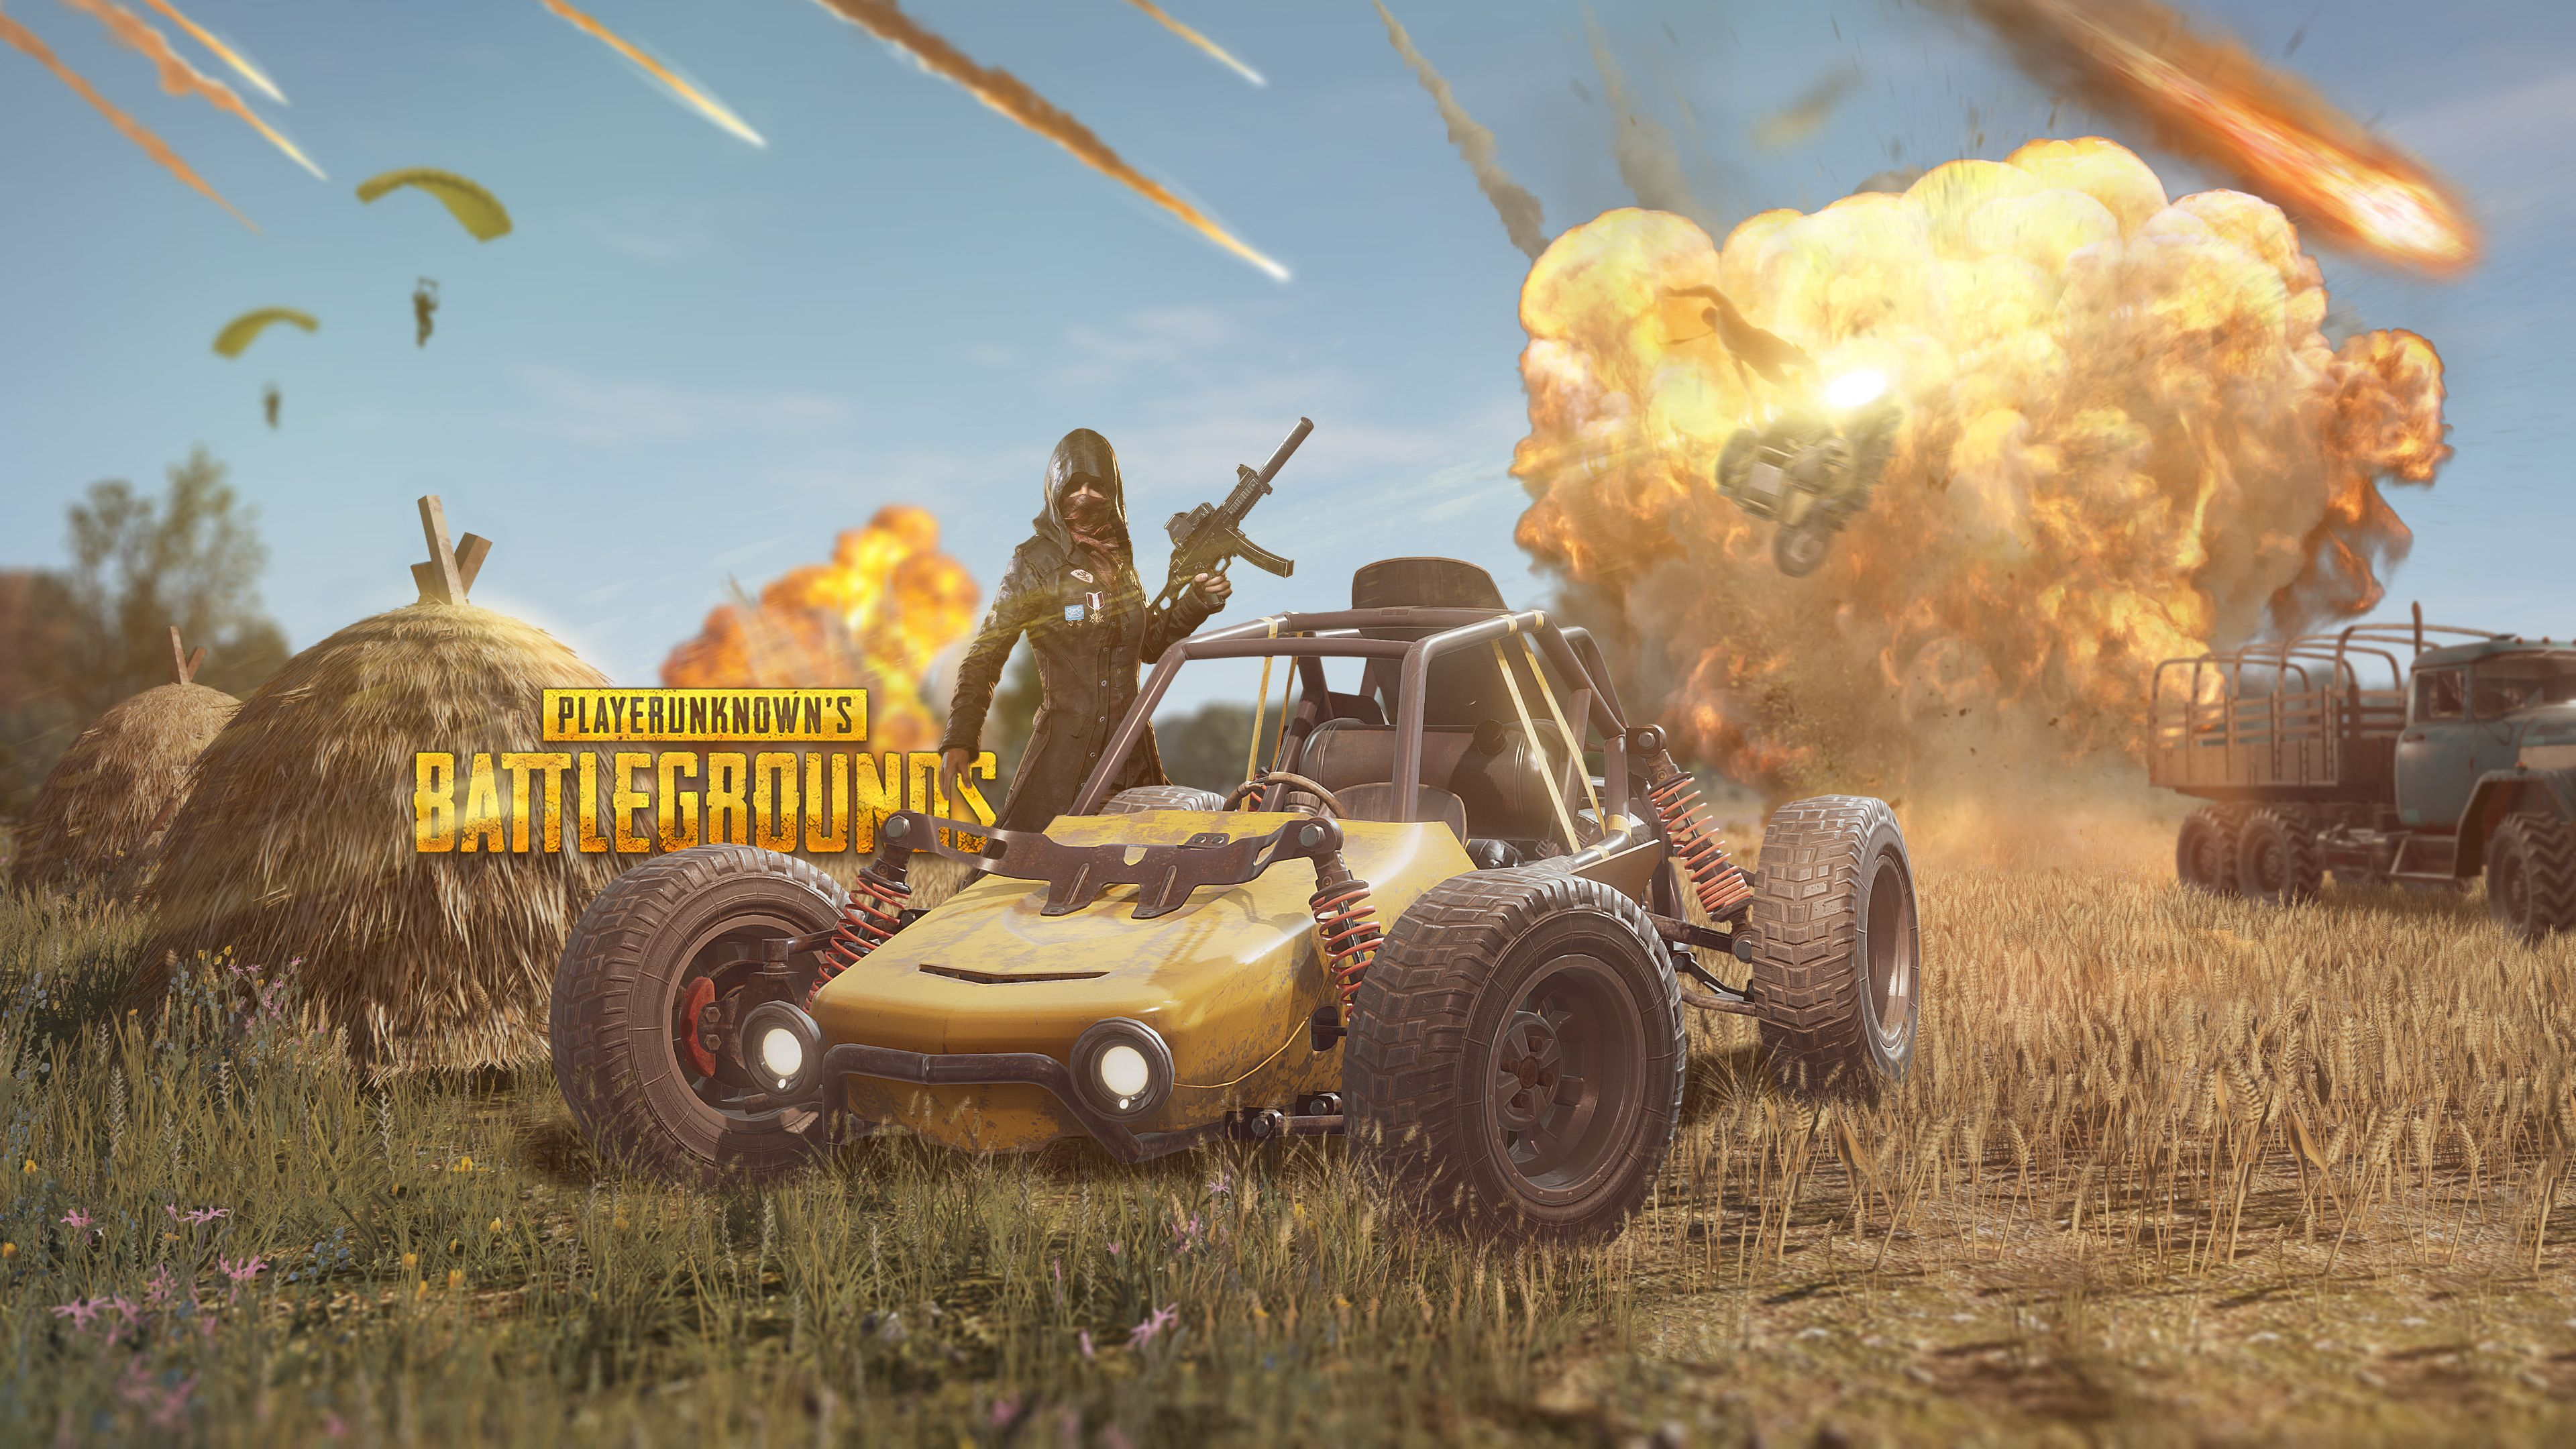 Pubg Wallpapers Widescreen On Wallpaper 1080p Hd Pubg Pinterest